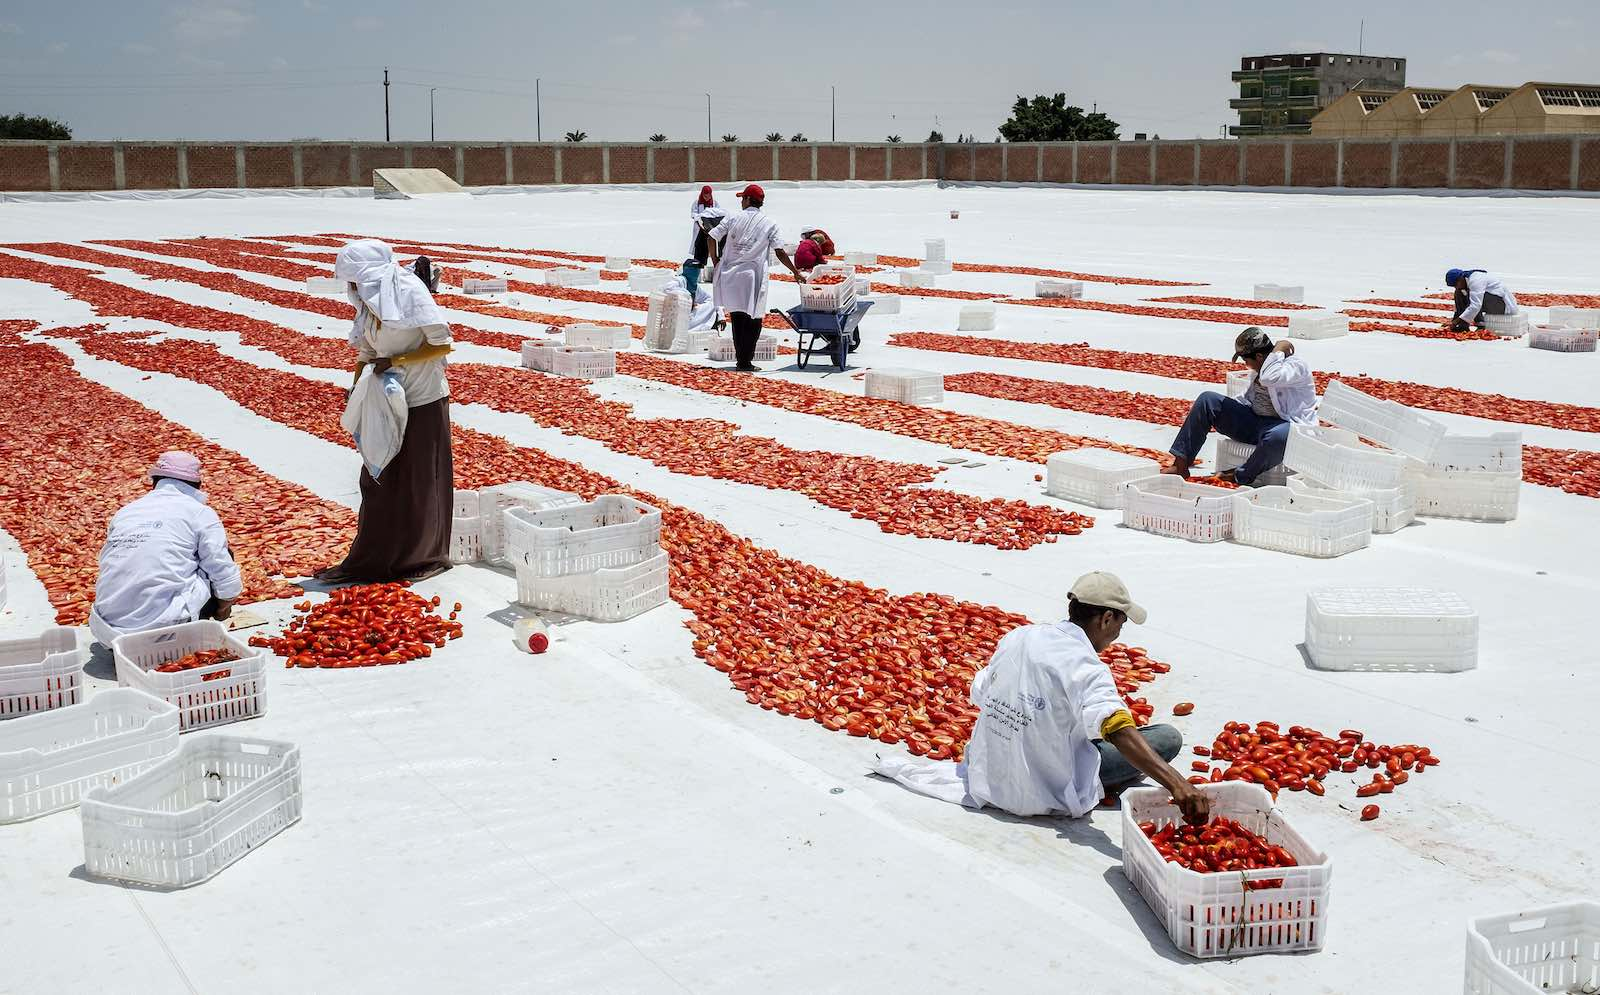 Slicing tomatoes for sun drying in Bangar el Sokor, Nubaria, Egypt (Photo: Heba Khamis/FAO)